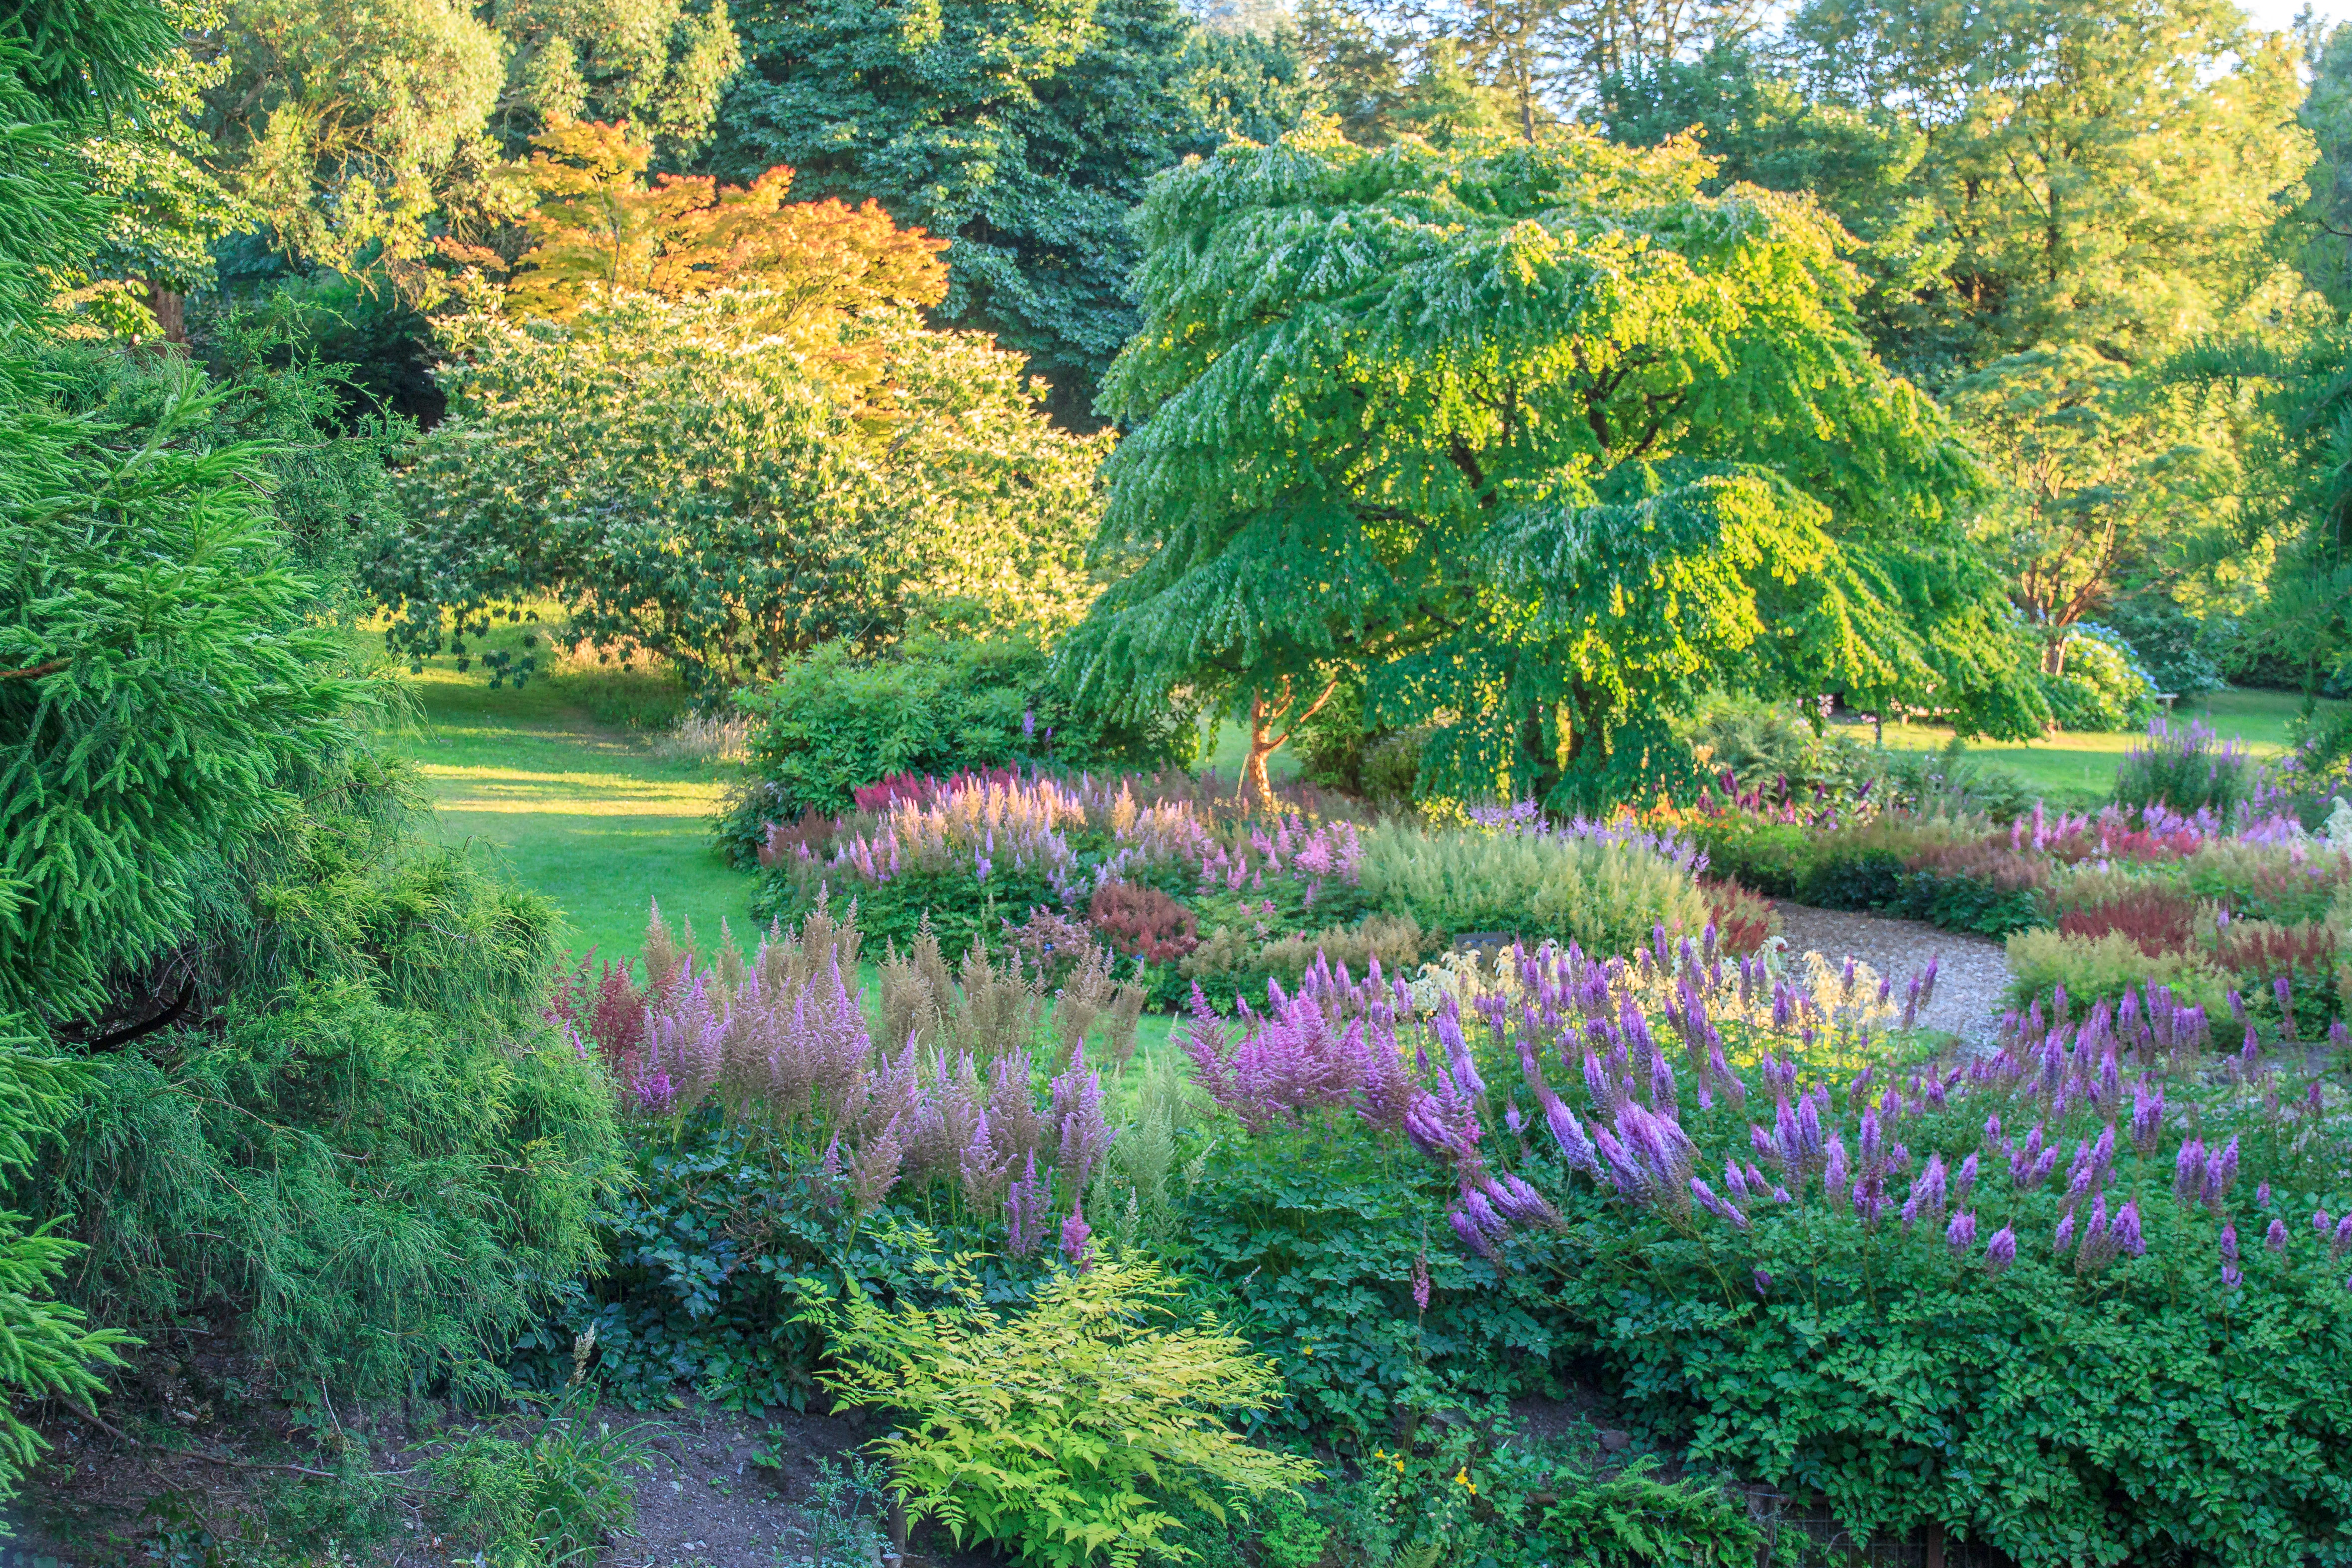 Marwood Hill Gardens, August 2018